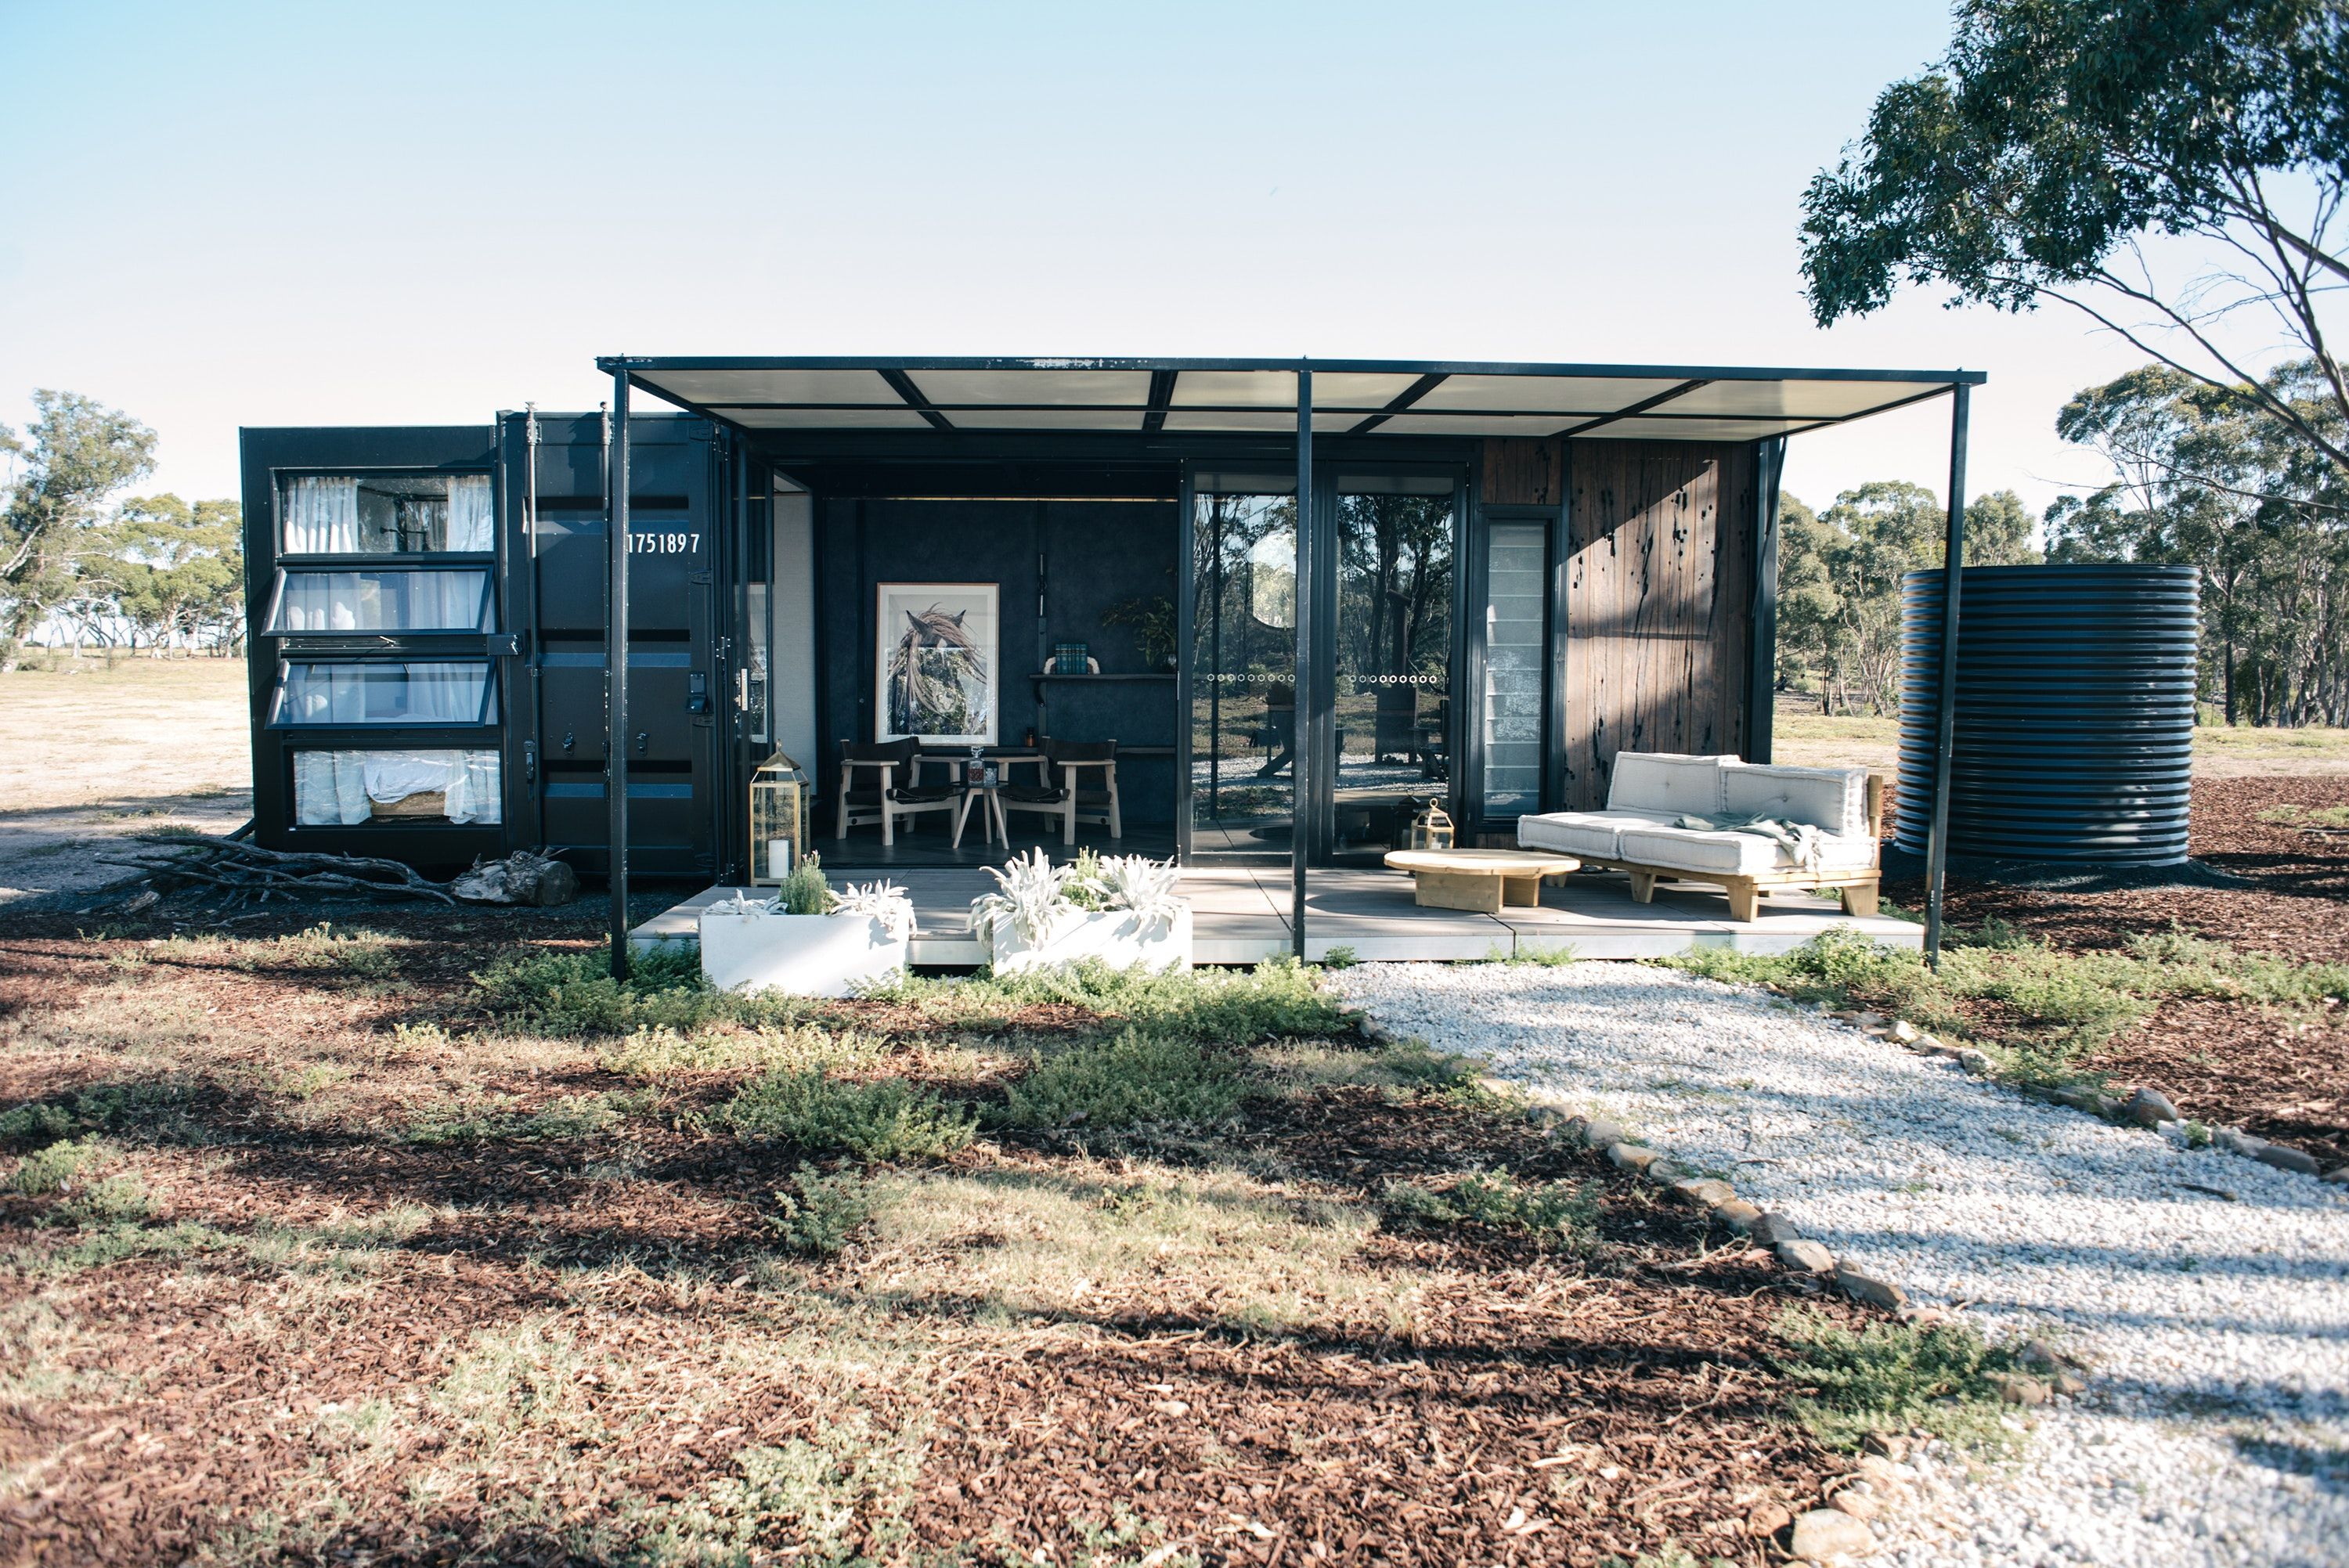 Think inside the box the coolest revamped shipping container hotels